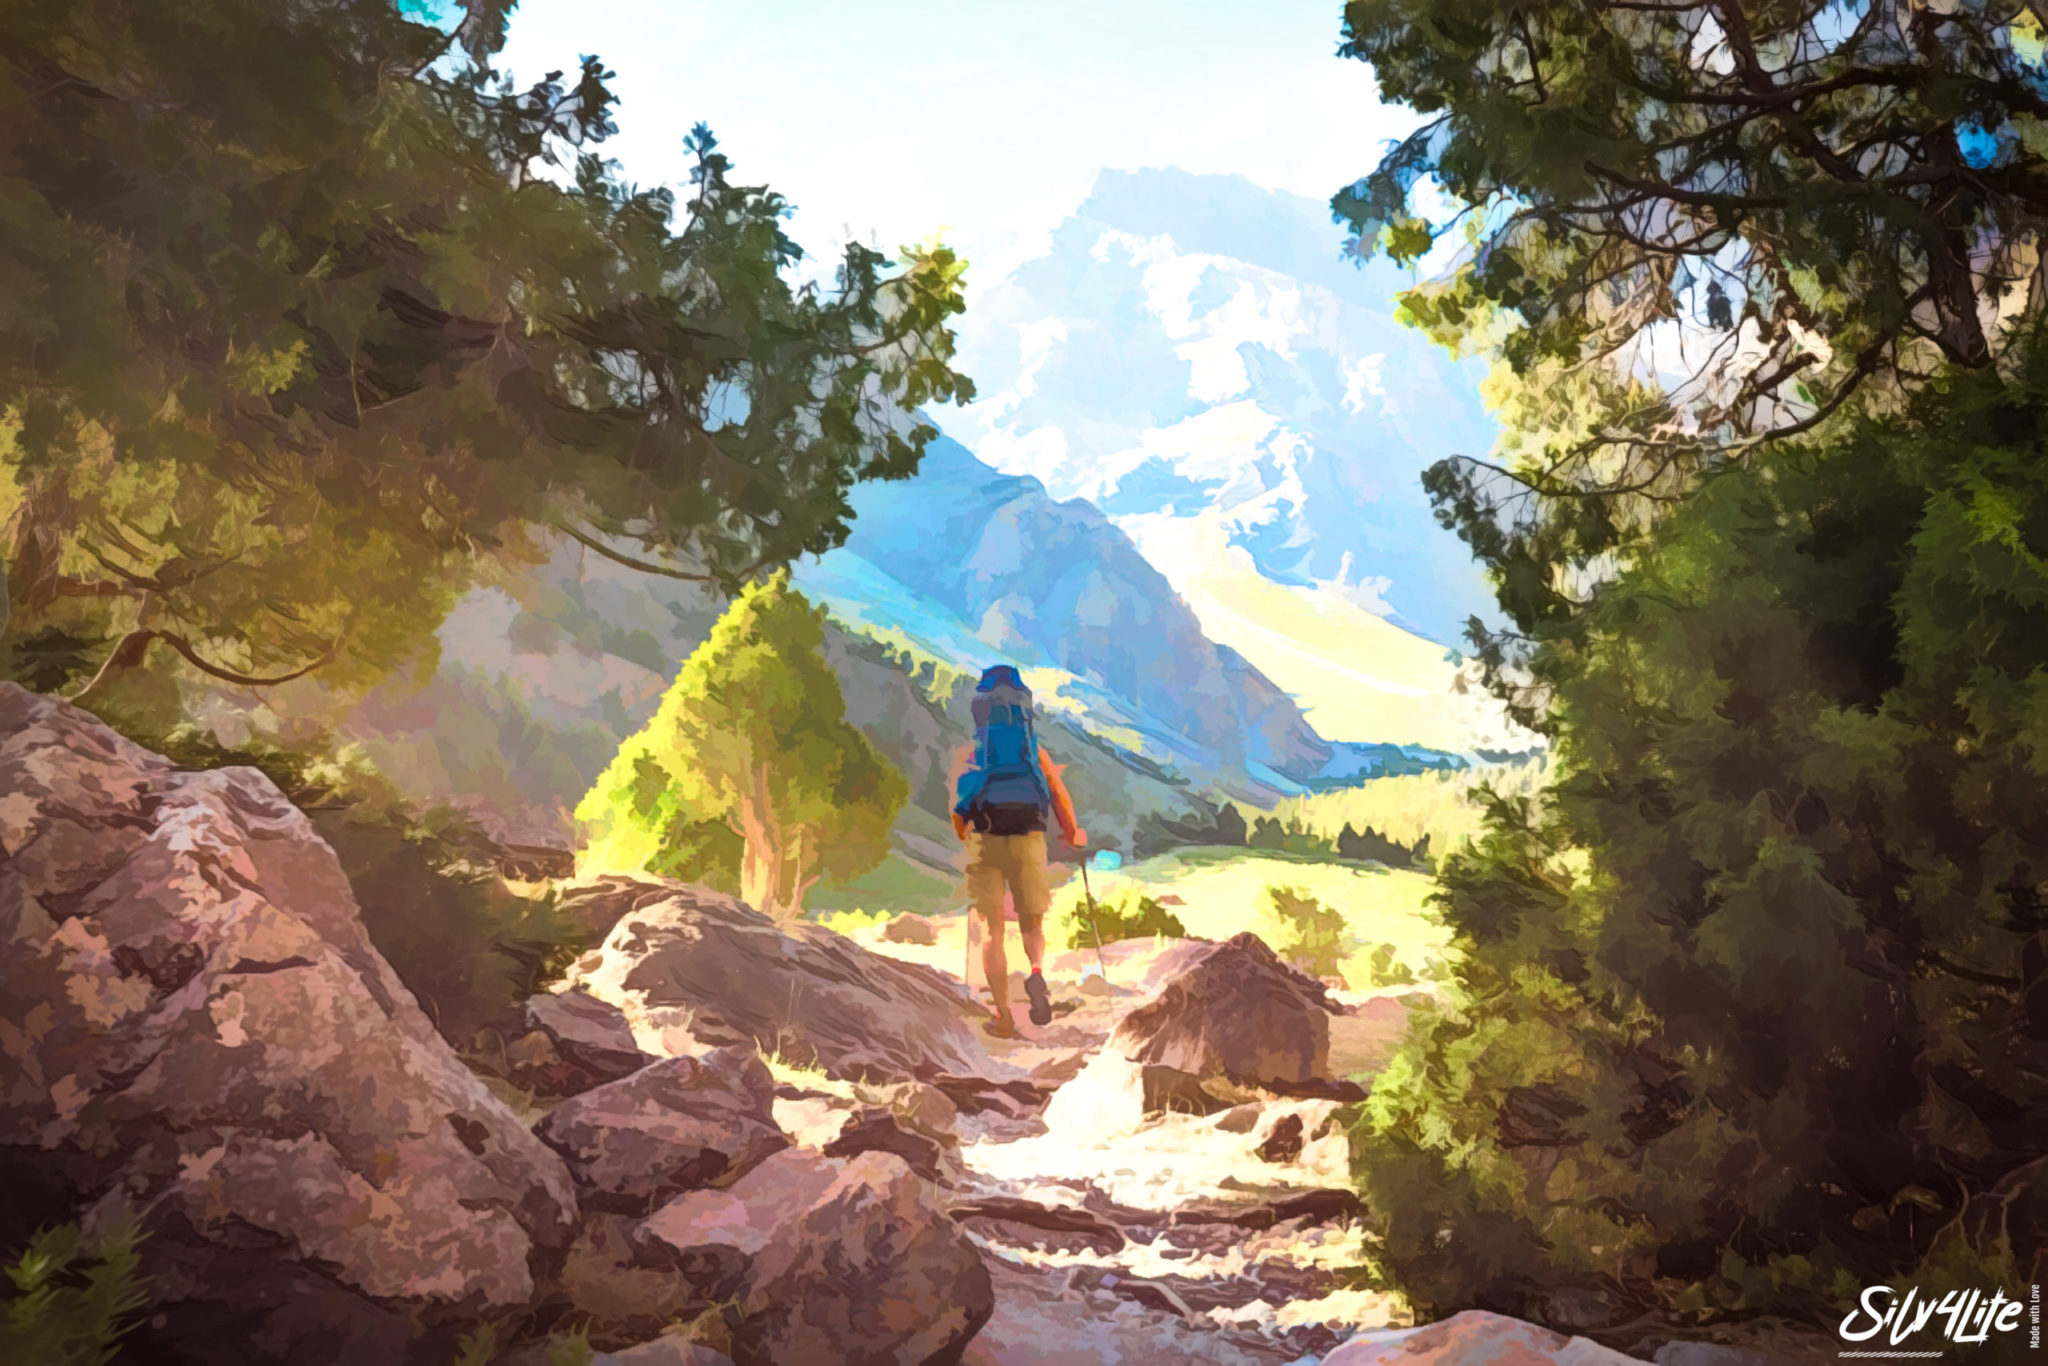 The man in mountains – Paint